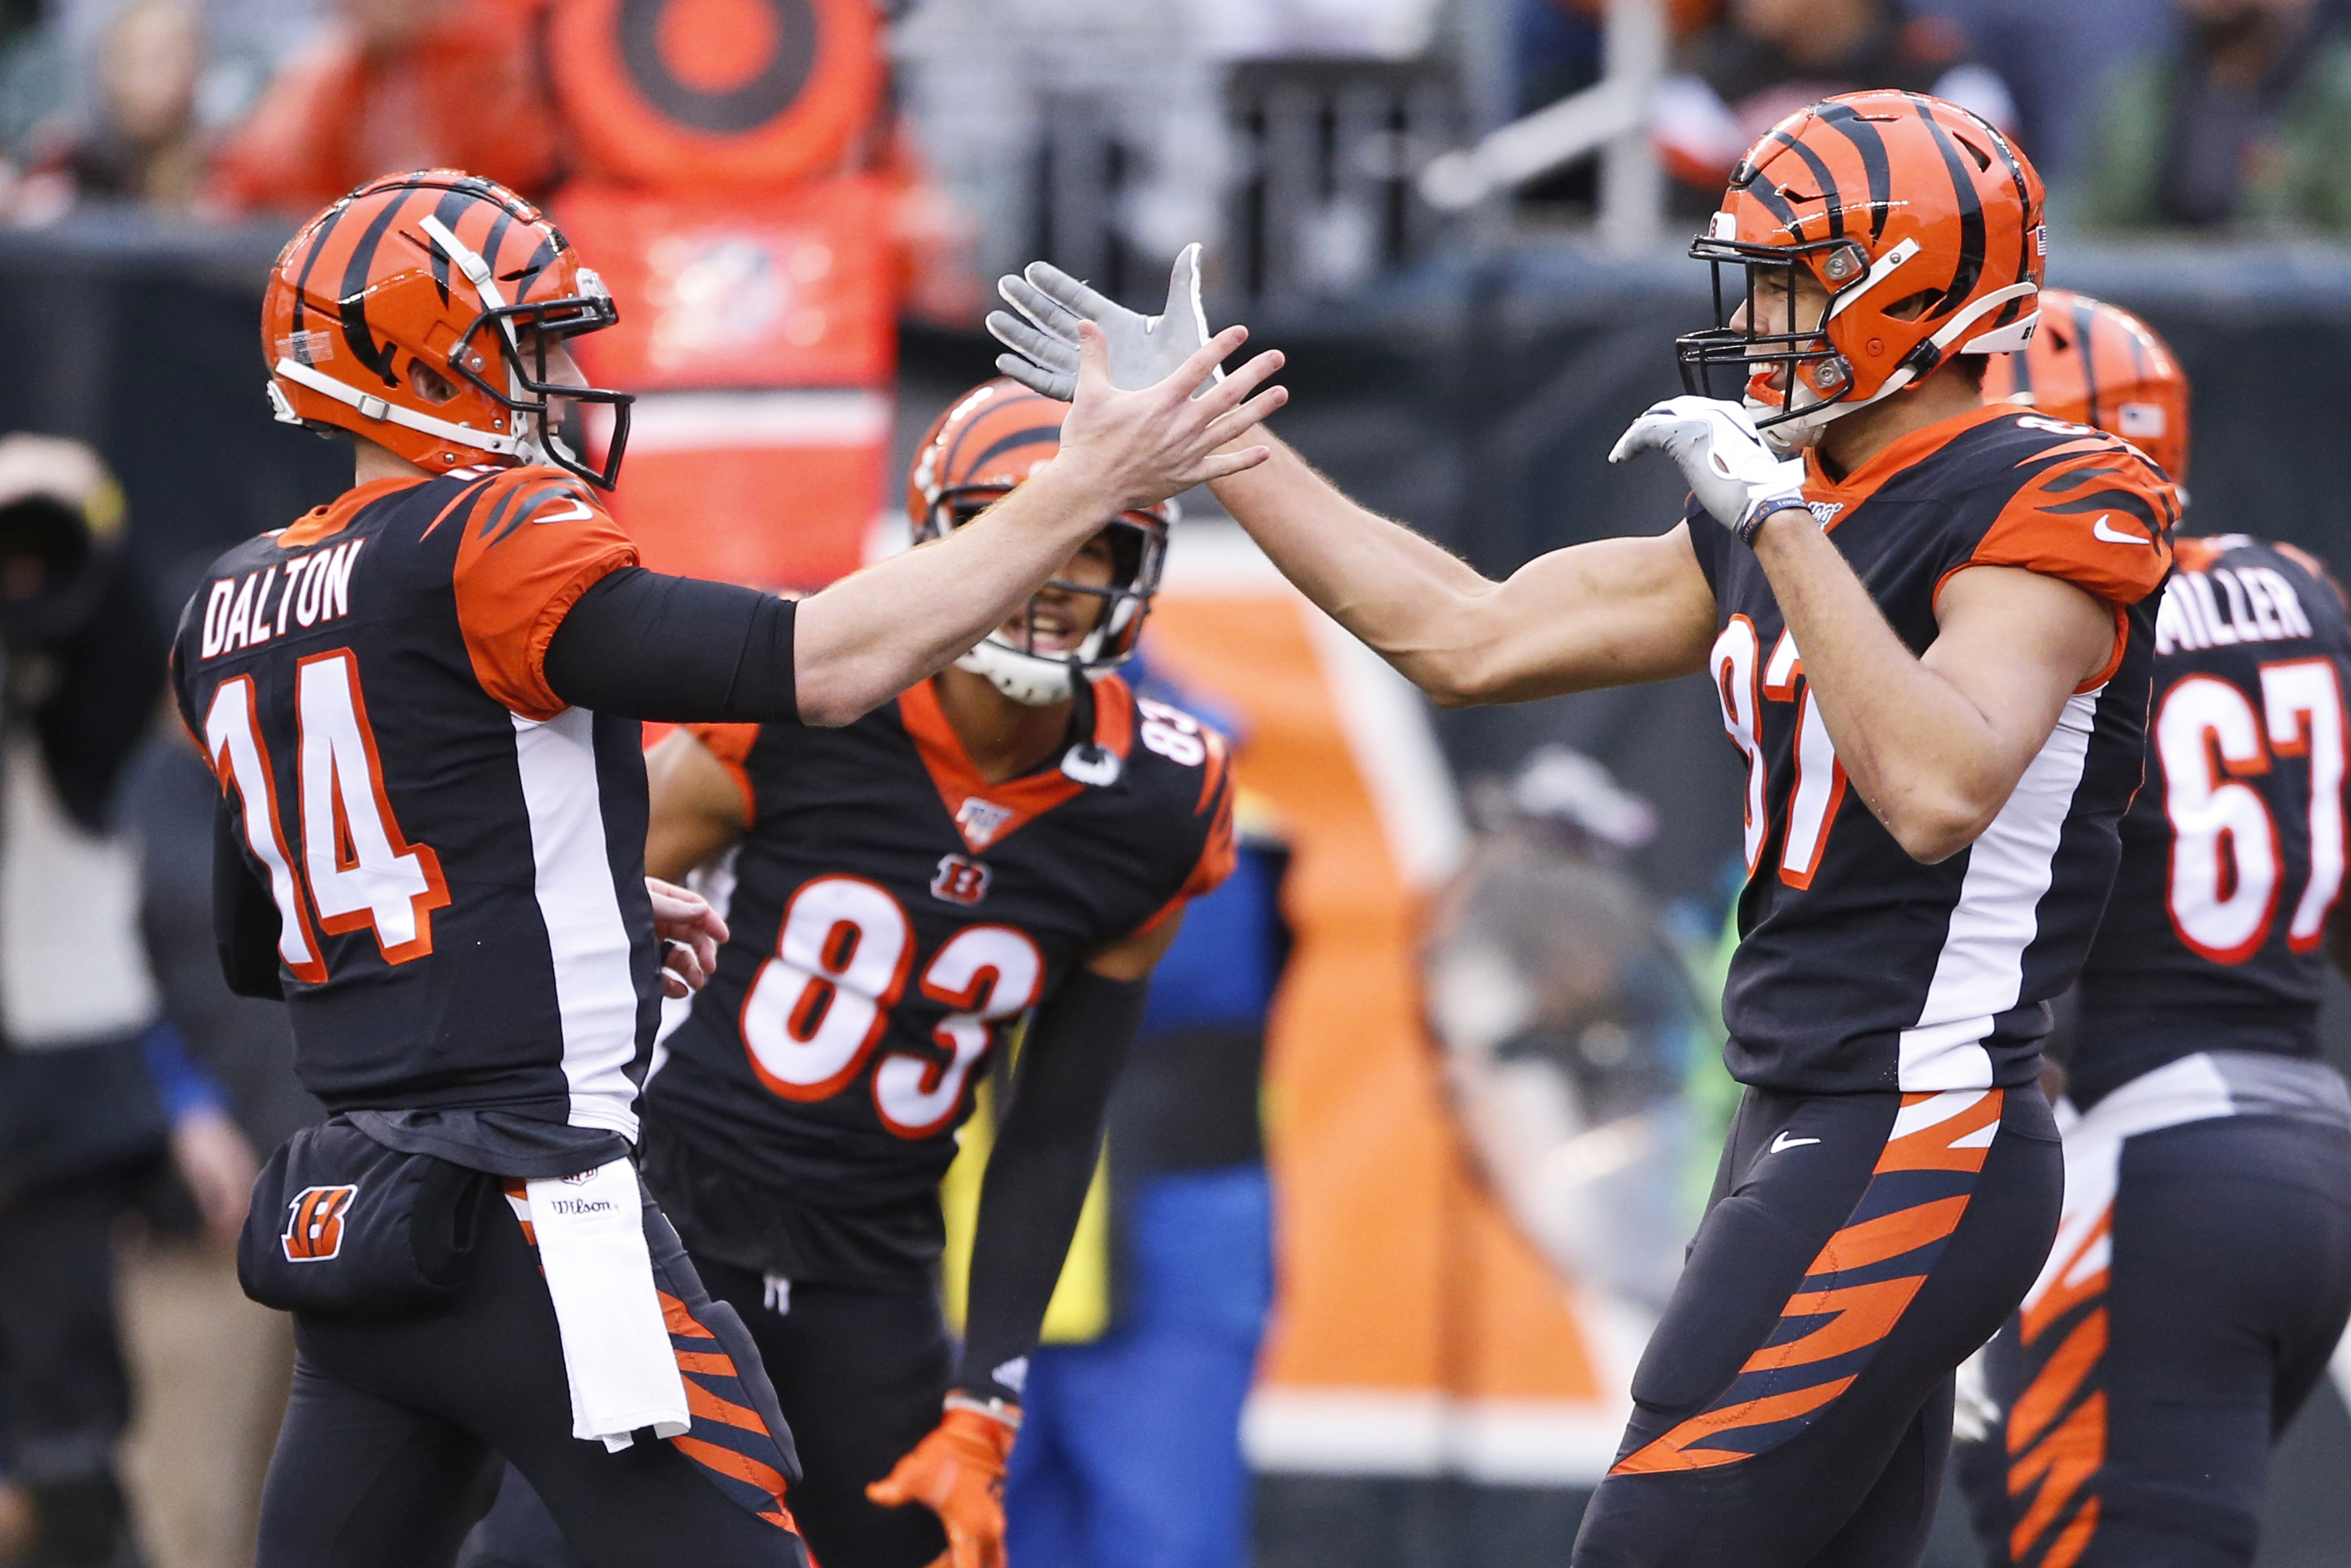 Dalton leads Bengals over Browns 33-23, Kitchens later fired